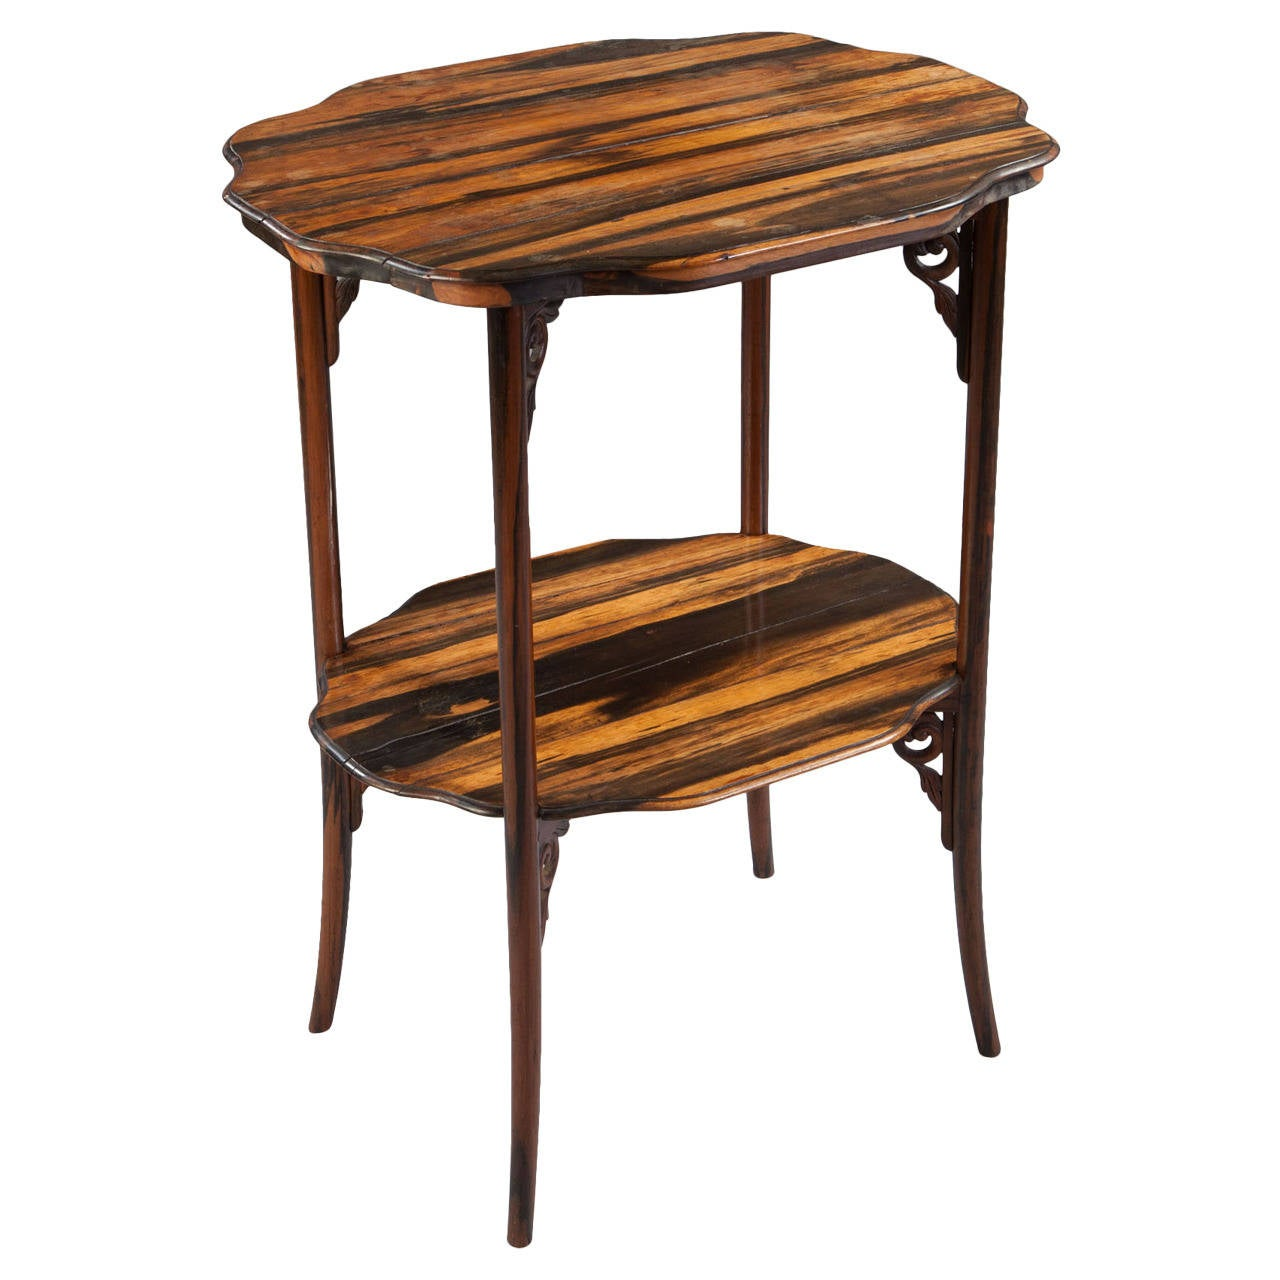 Calamander Wood Folding Campaign Table For Sale